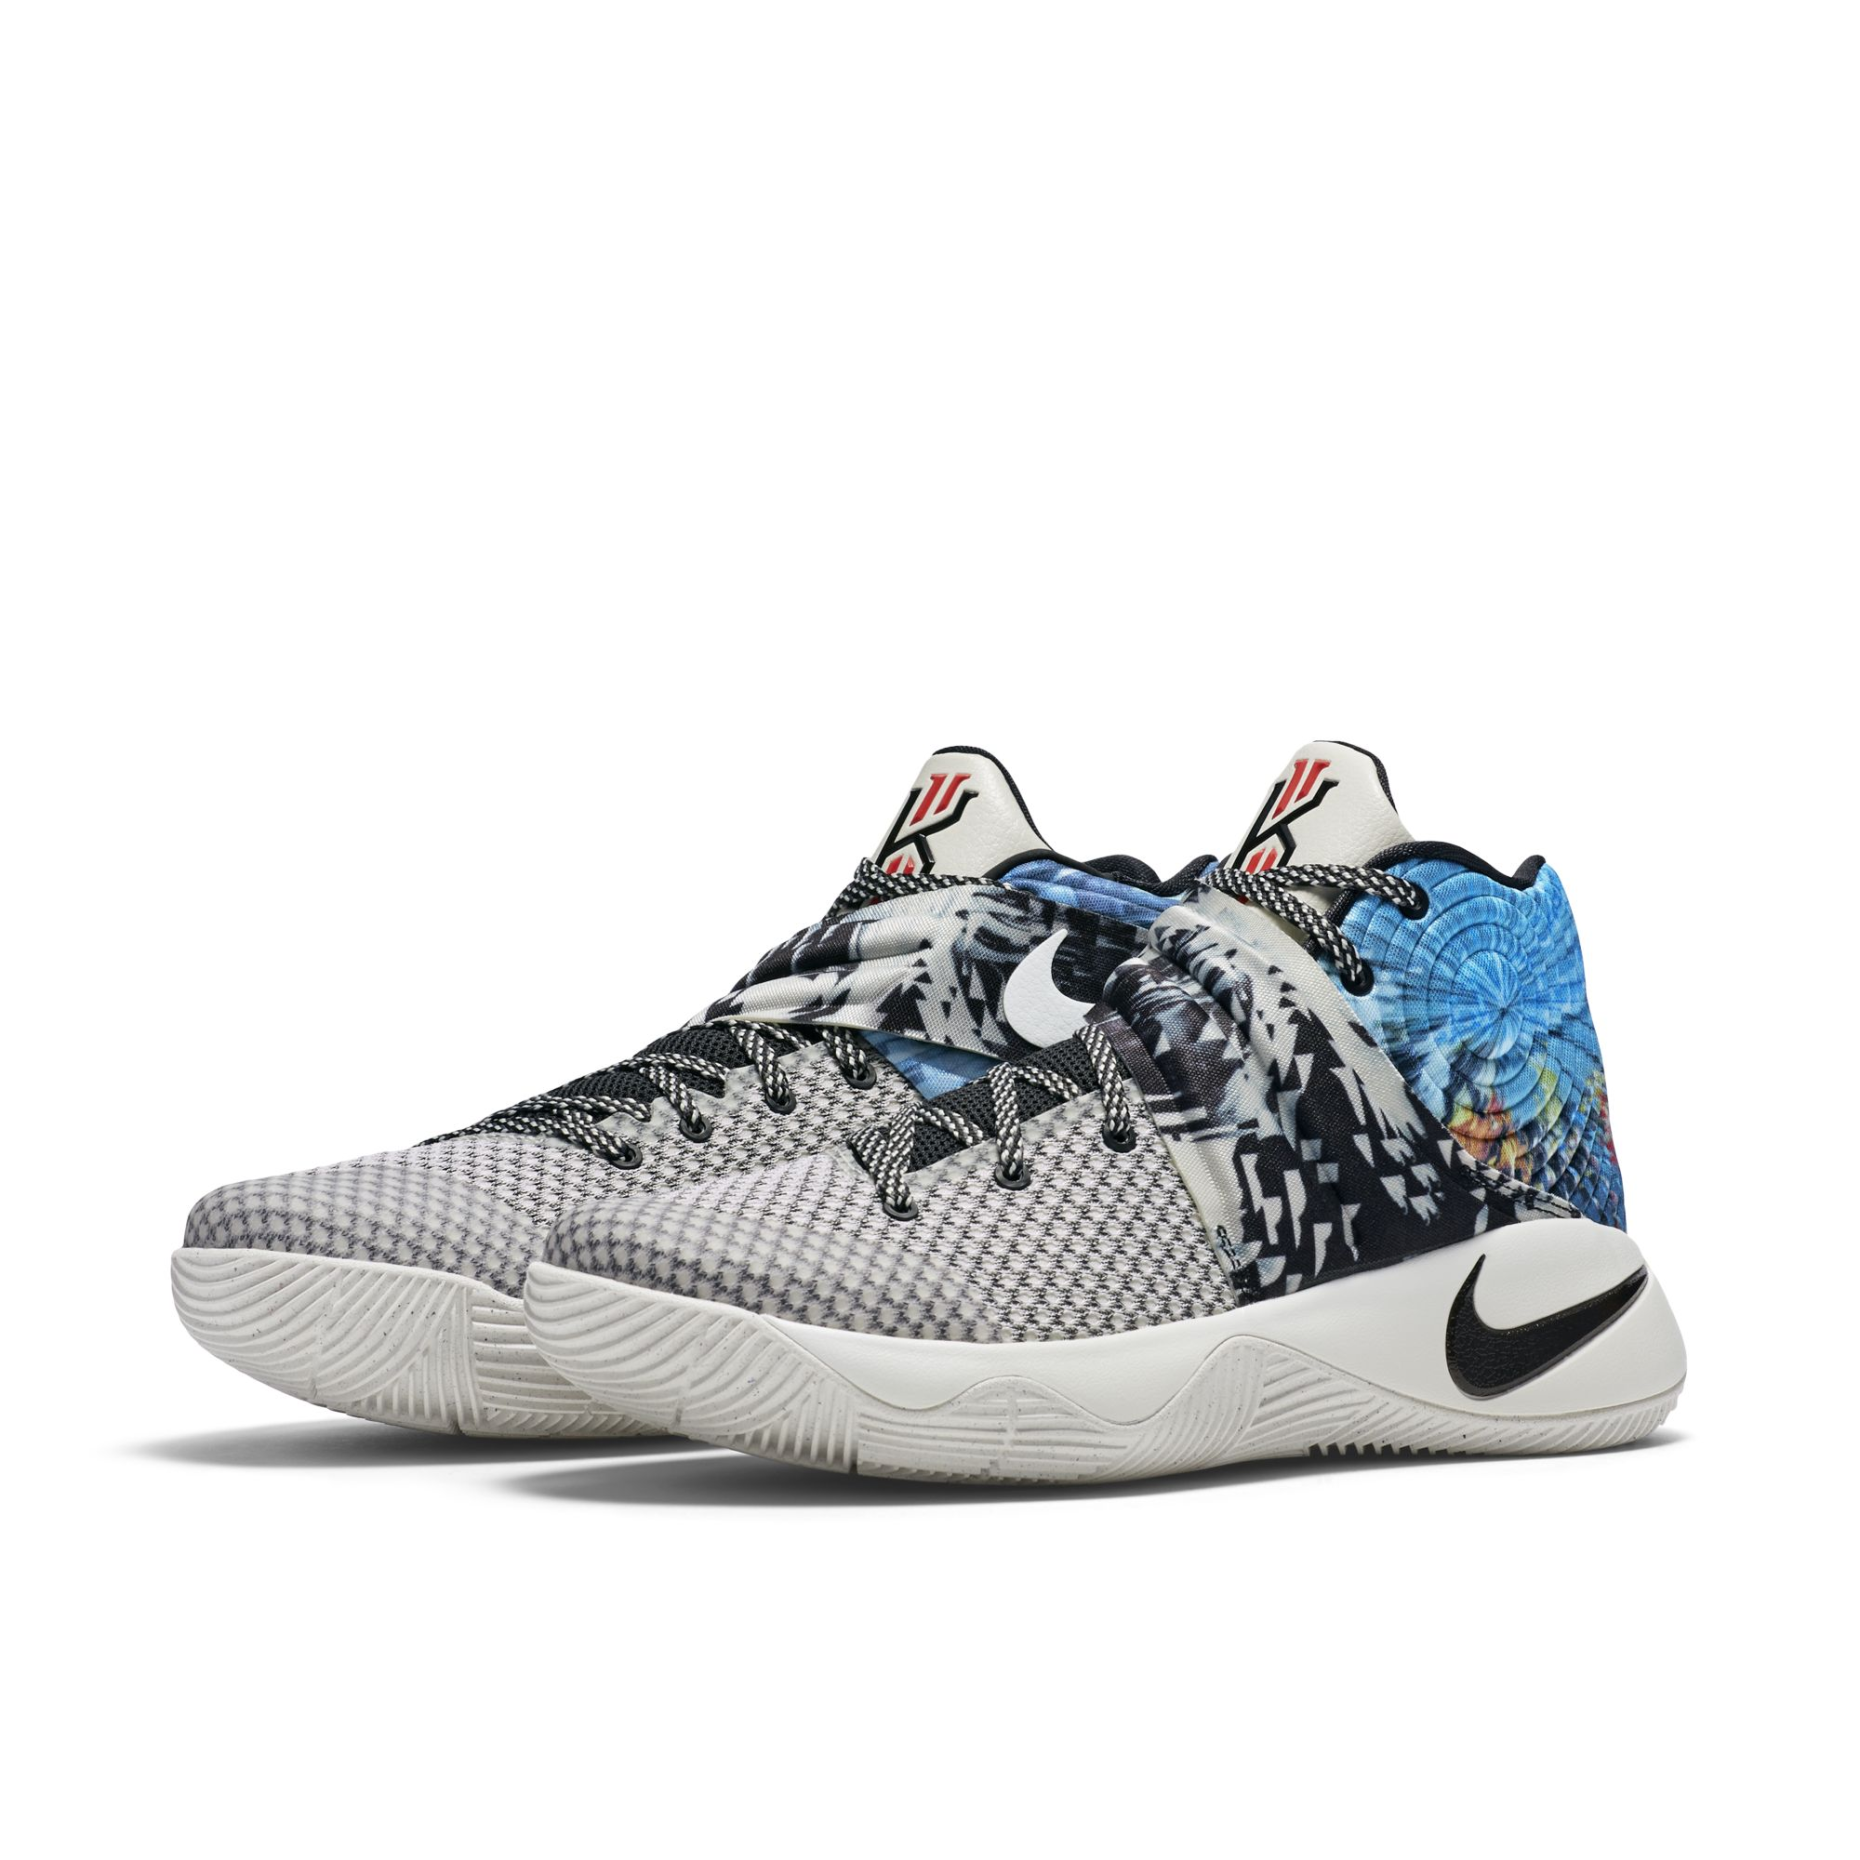 competitive price 9cf27 34b17 reduced kyrie 2 ep sneaker pinterest nike shoes and sneakers 0a5a5 c49d2